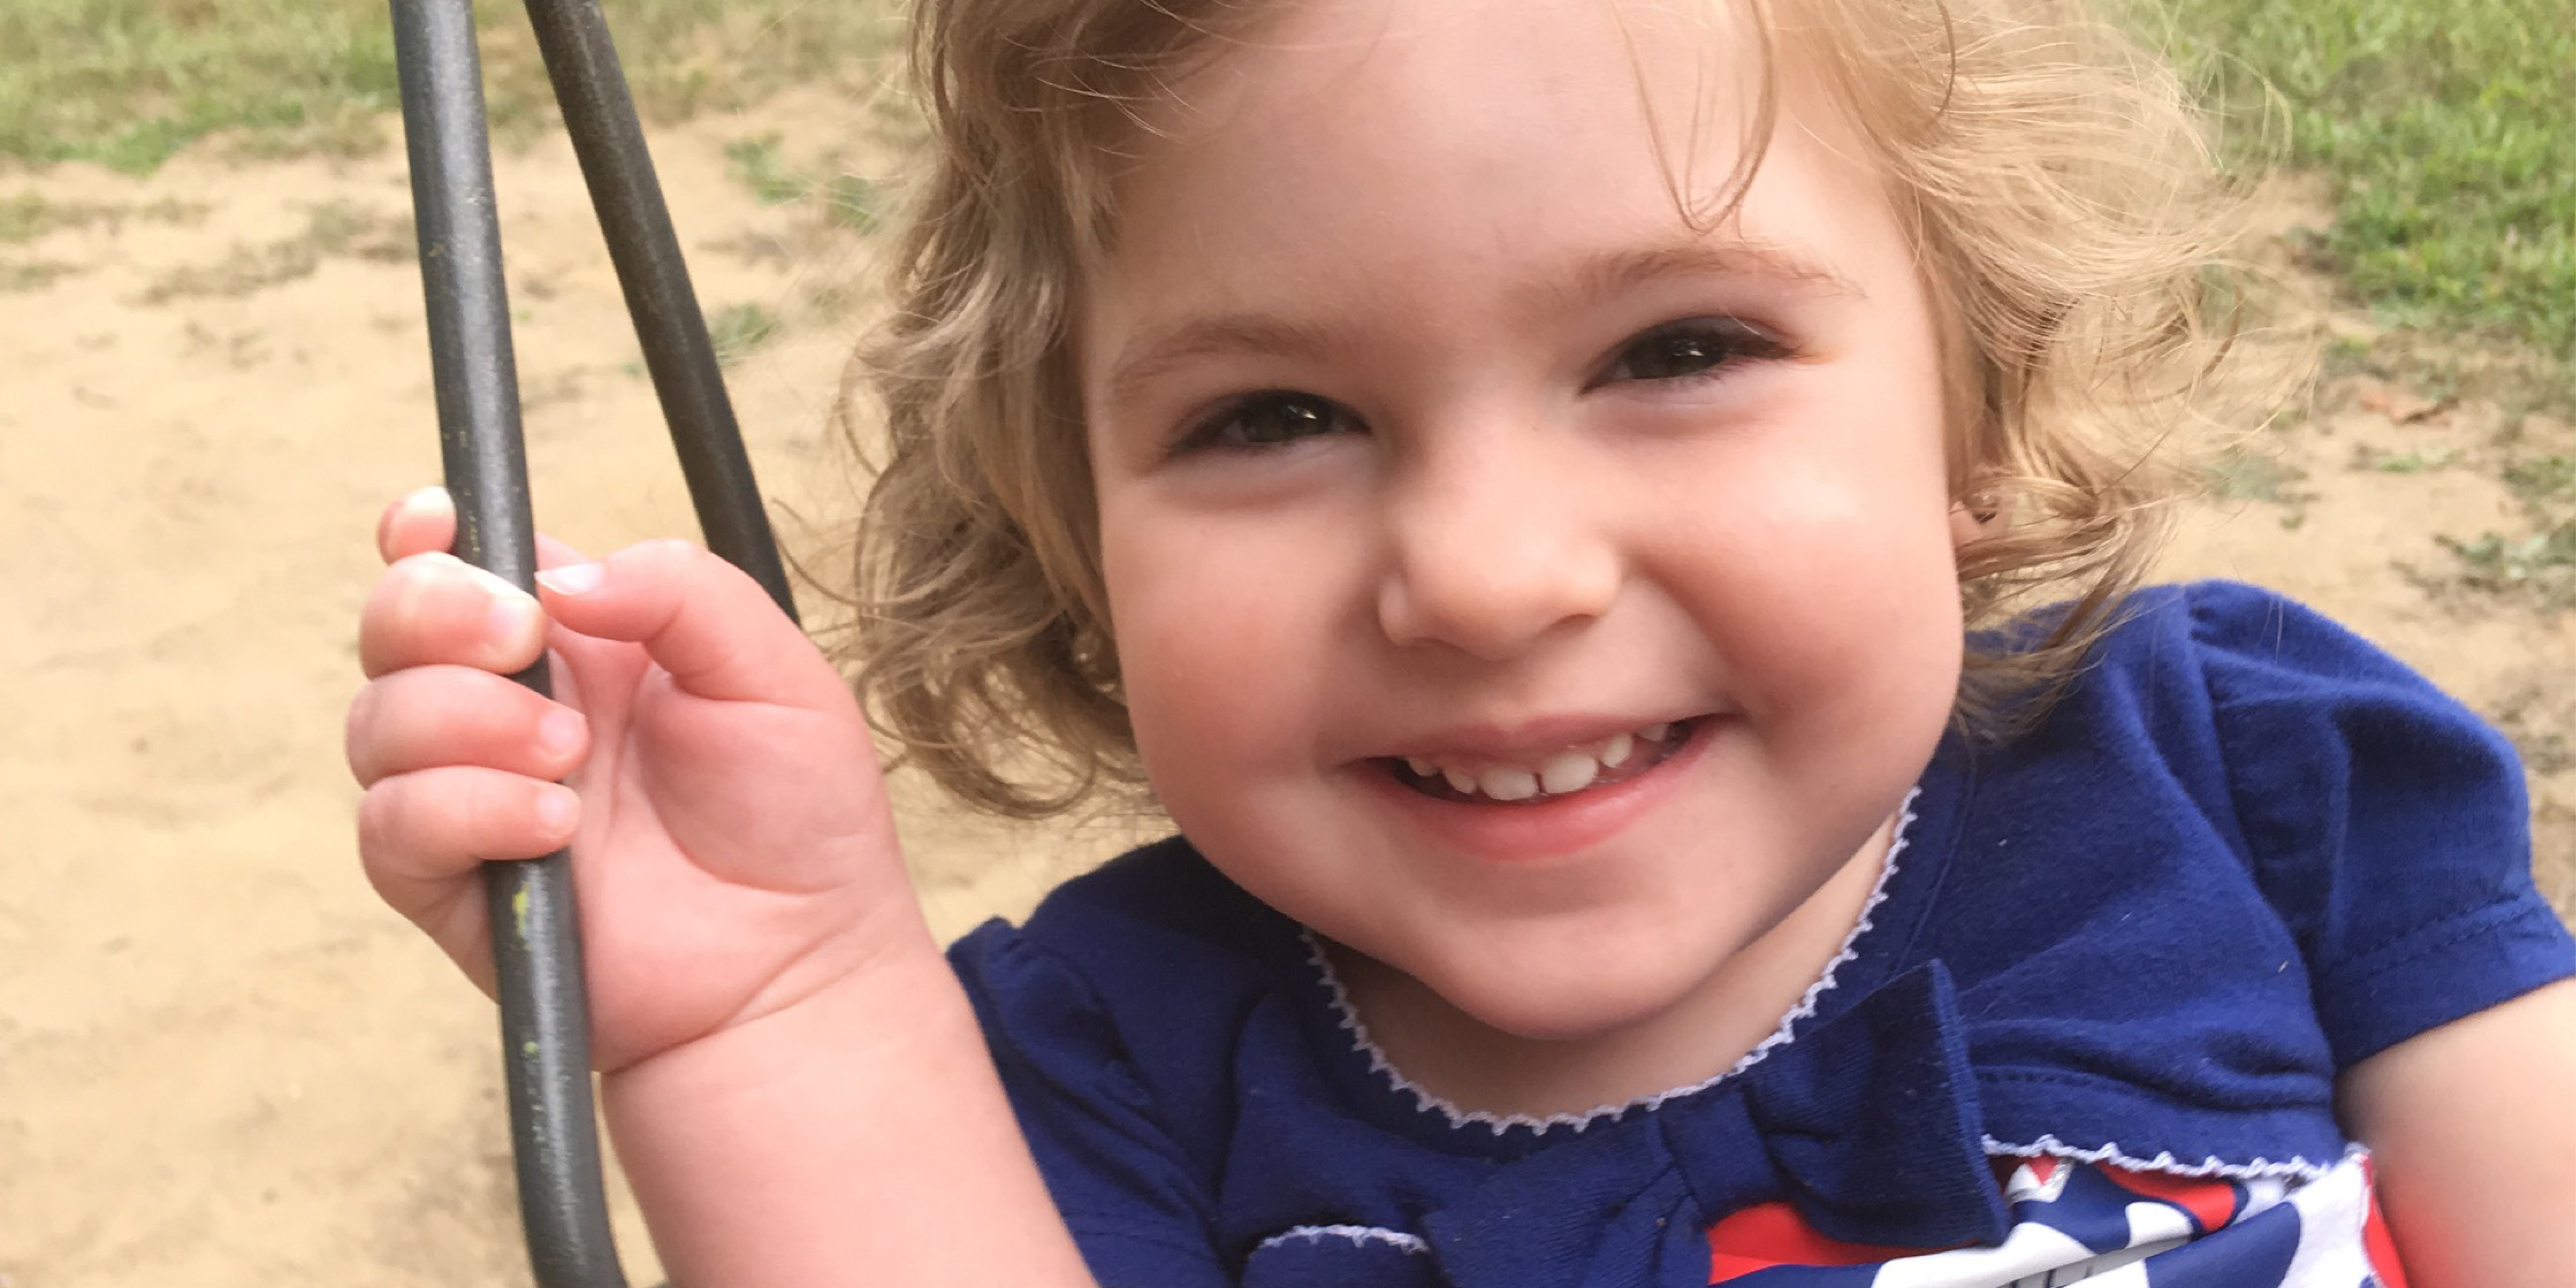 Young girl with Rett Syndrome swinging outside